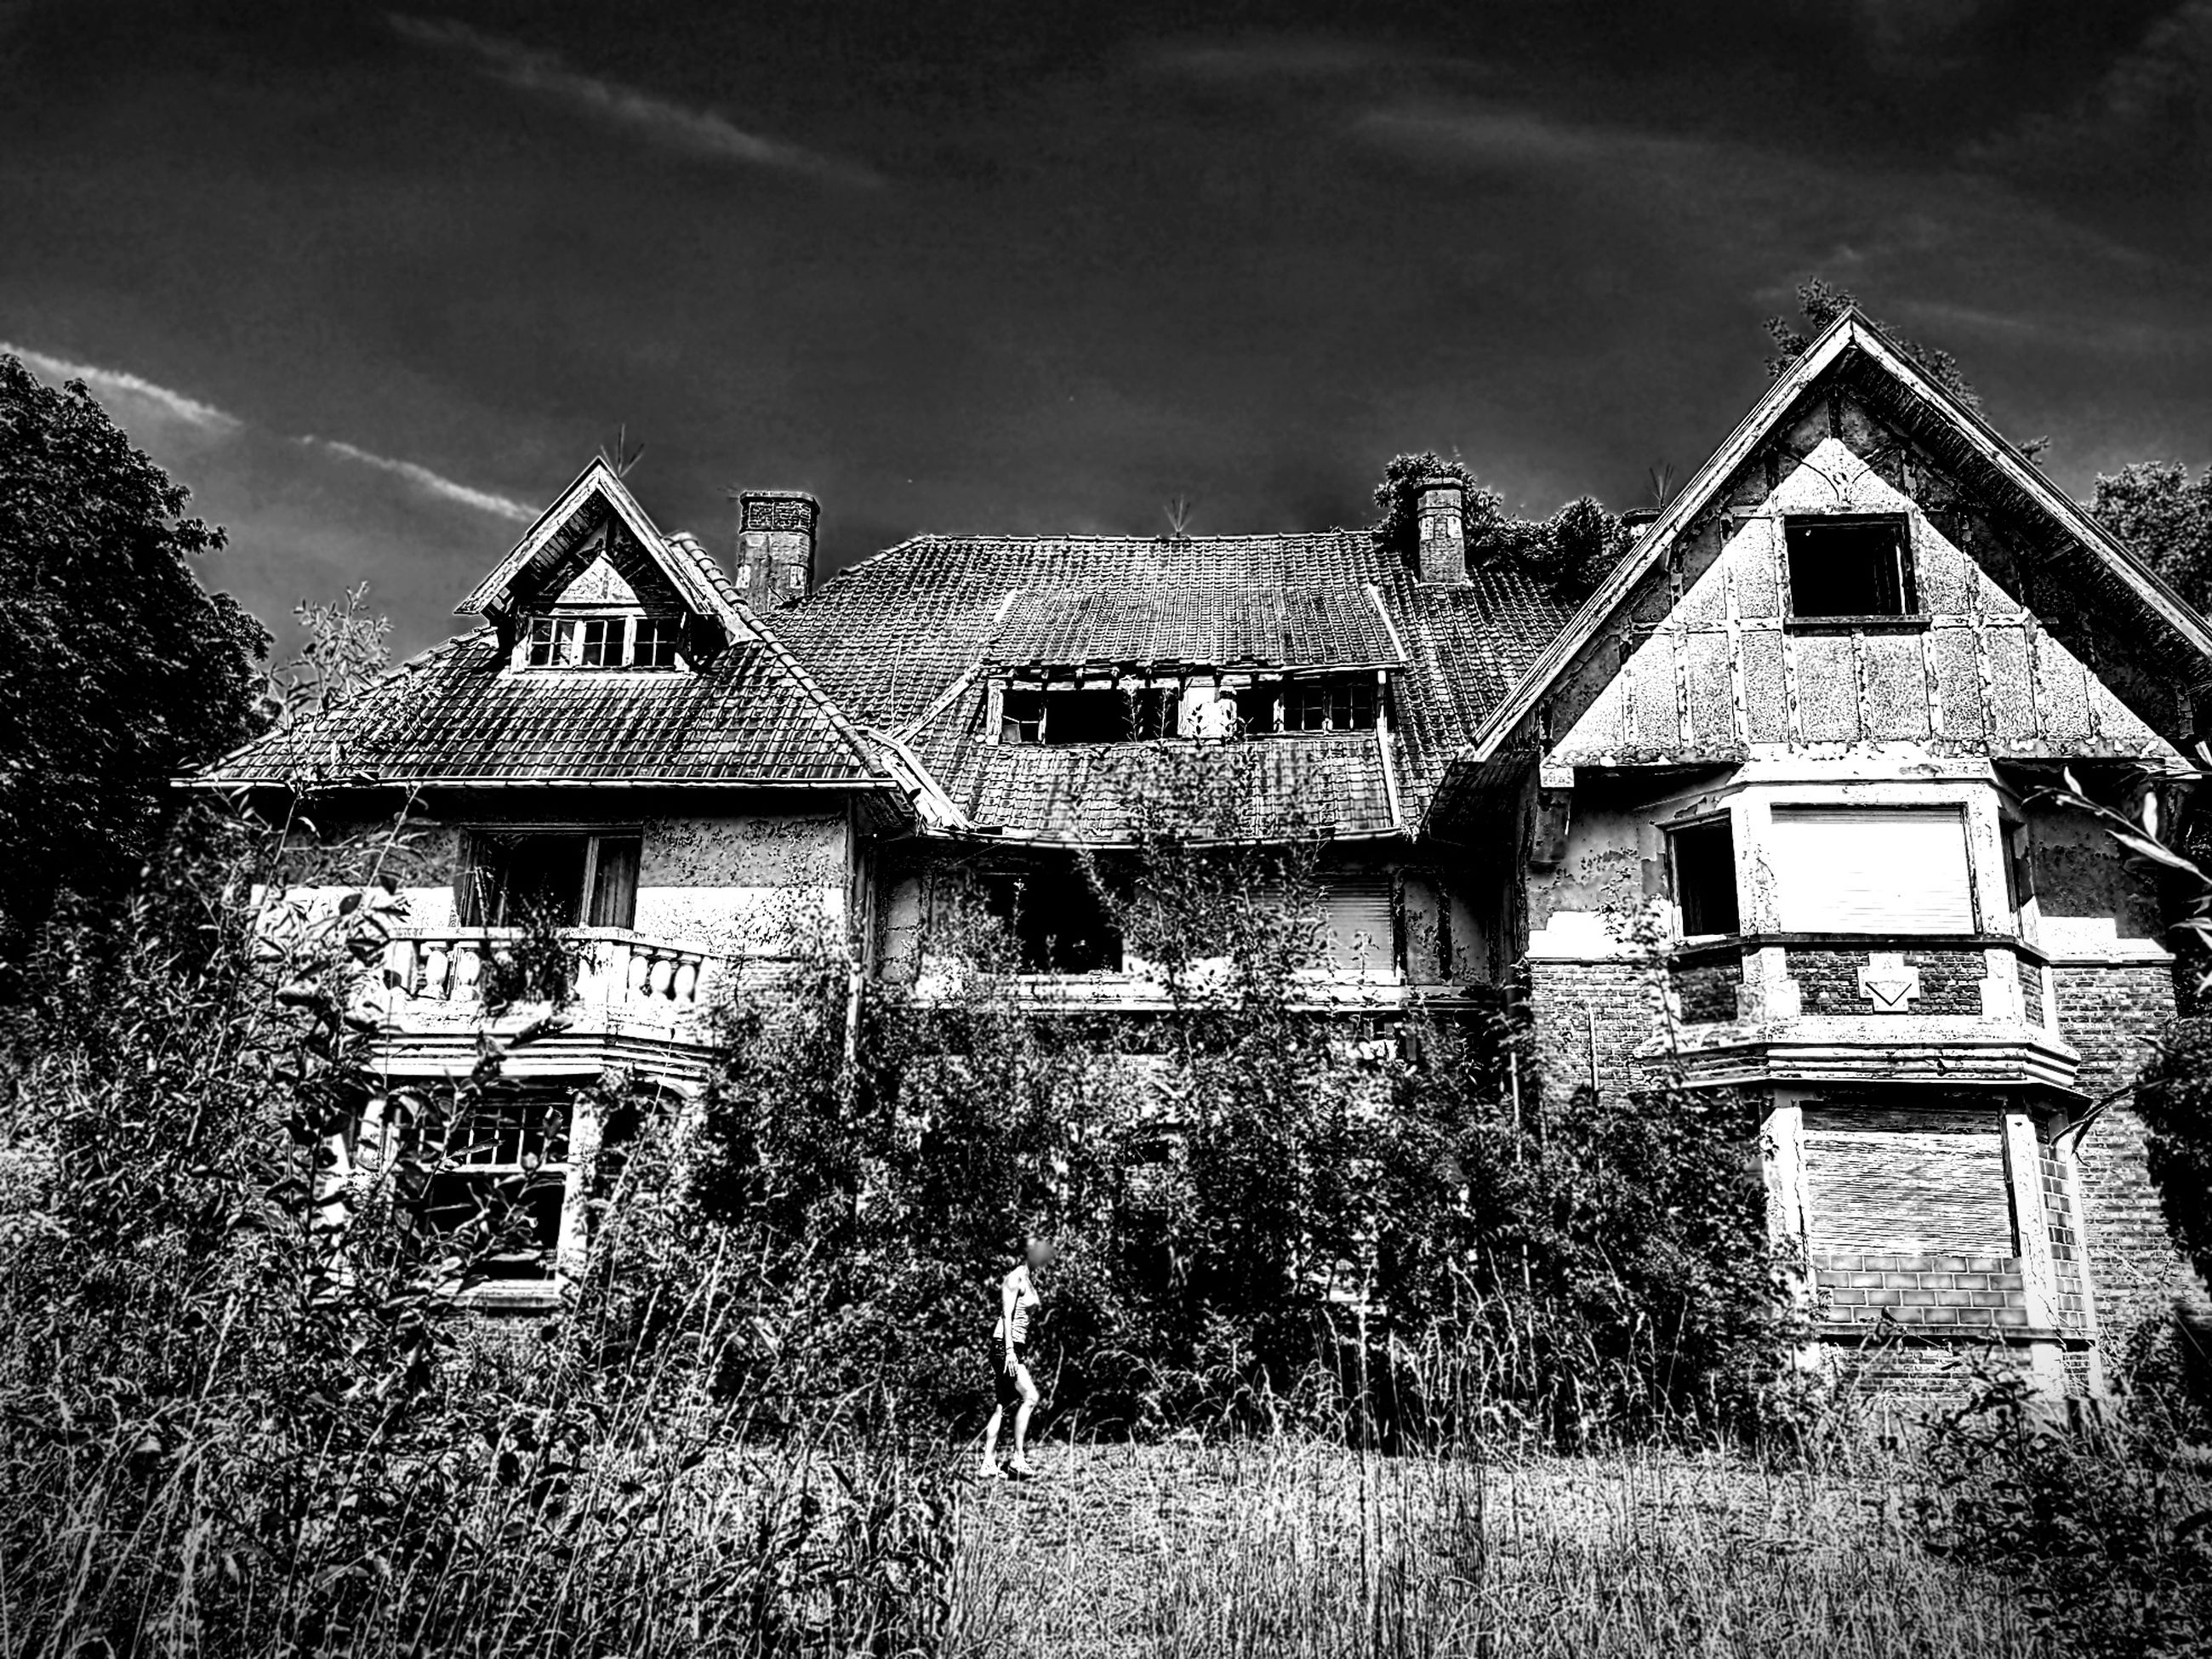 architecture, built structure, building exterior, building, plant, house, no people, sky, tree, nature, residential district, day, abandoned, grass, cloud - sky, old, outdoors, land, field, growth